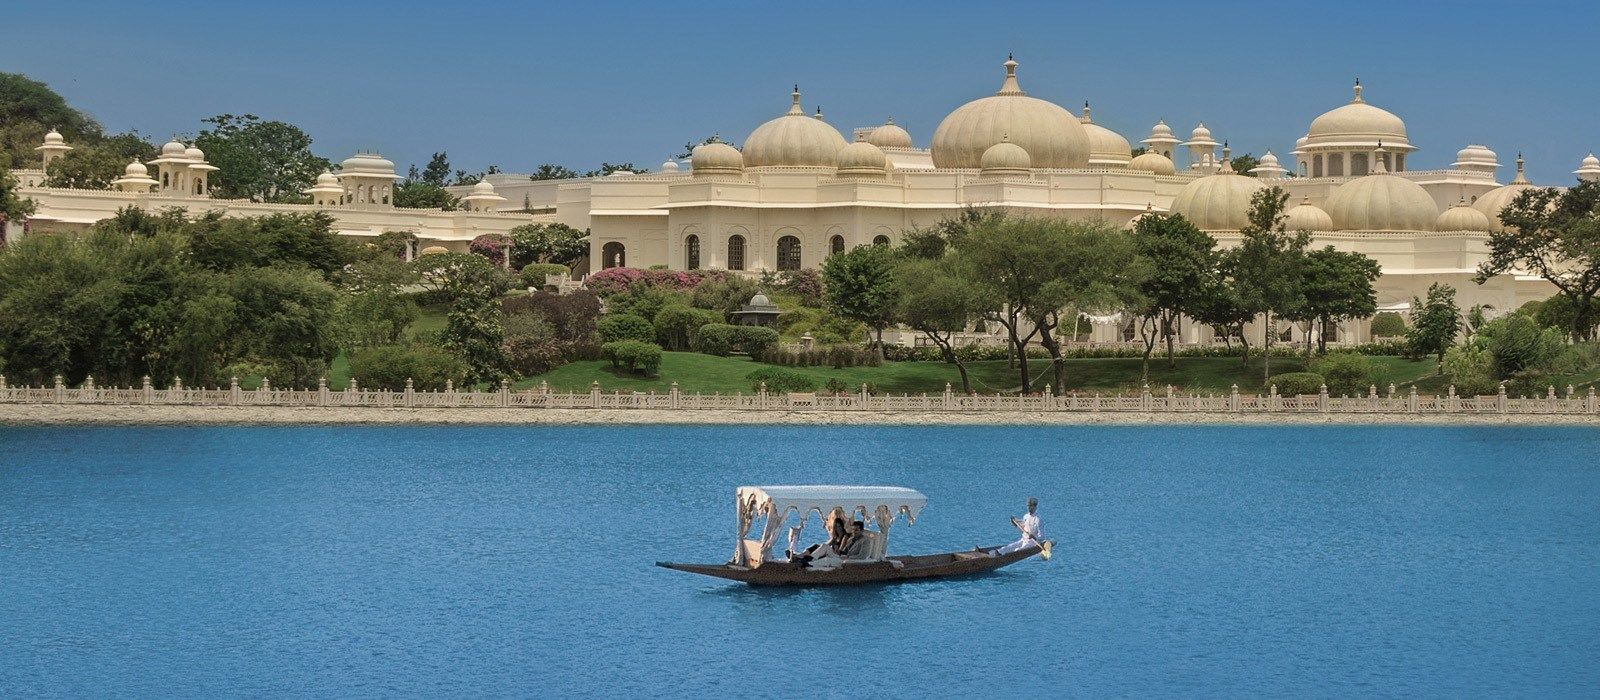 Oberoi Summer Special: Luxurious Rajasthan Tour Trip 7